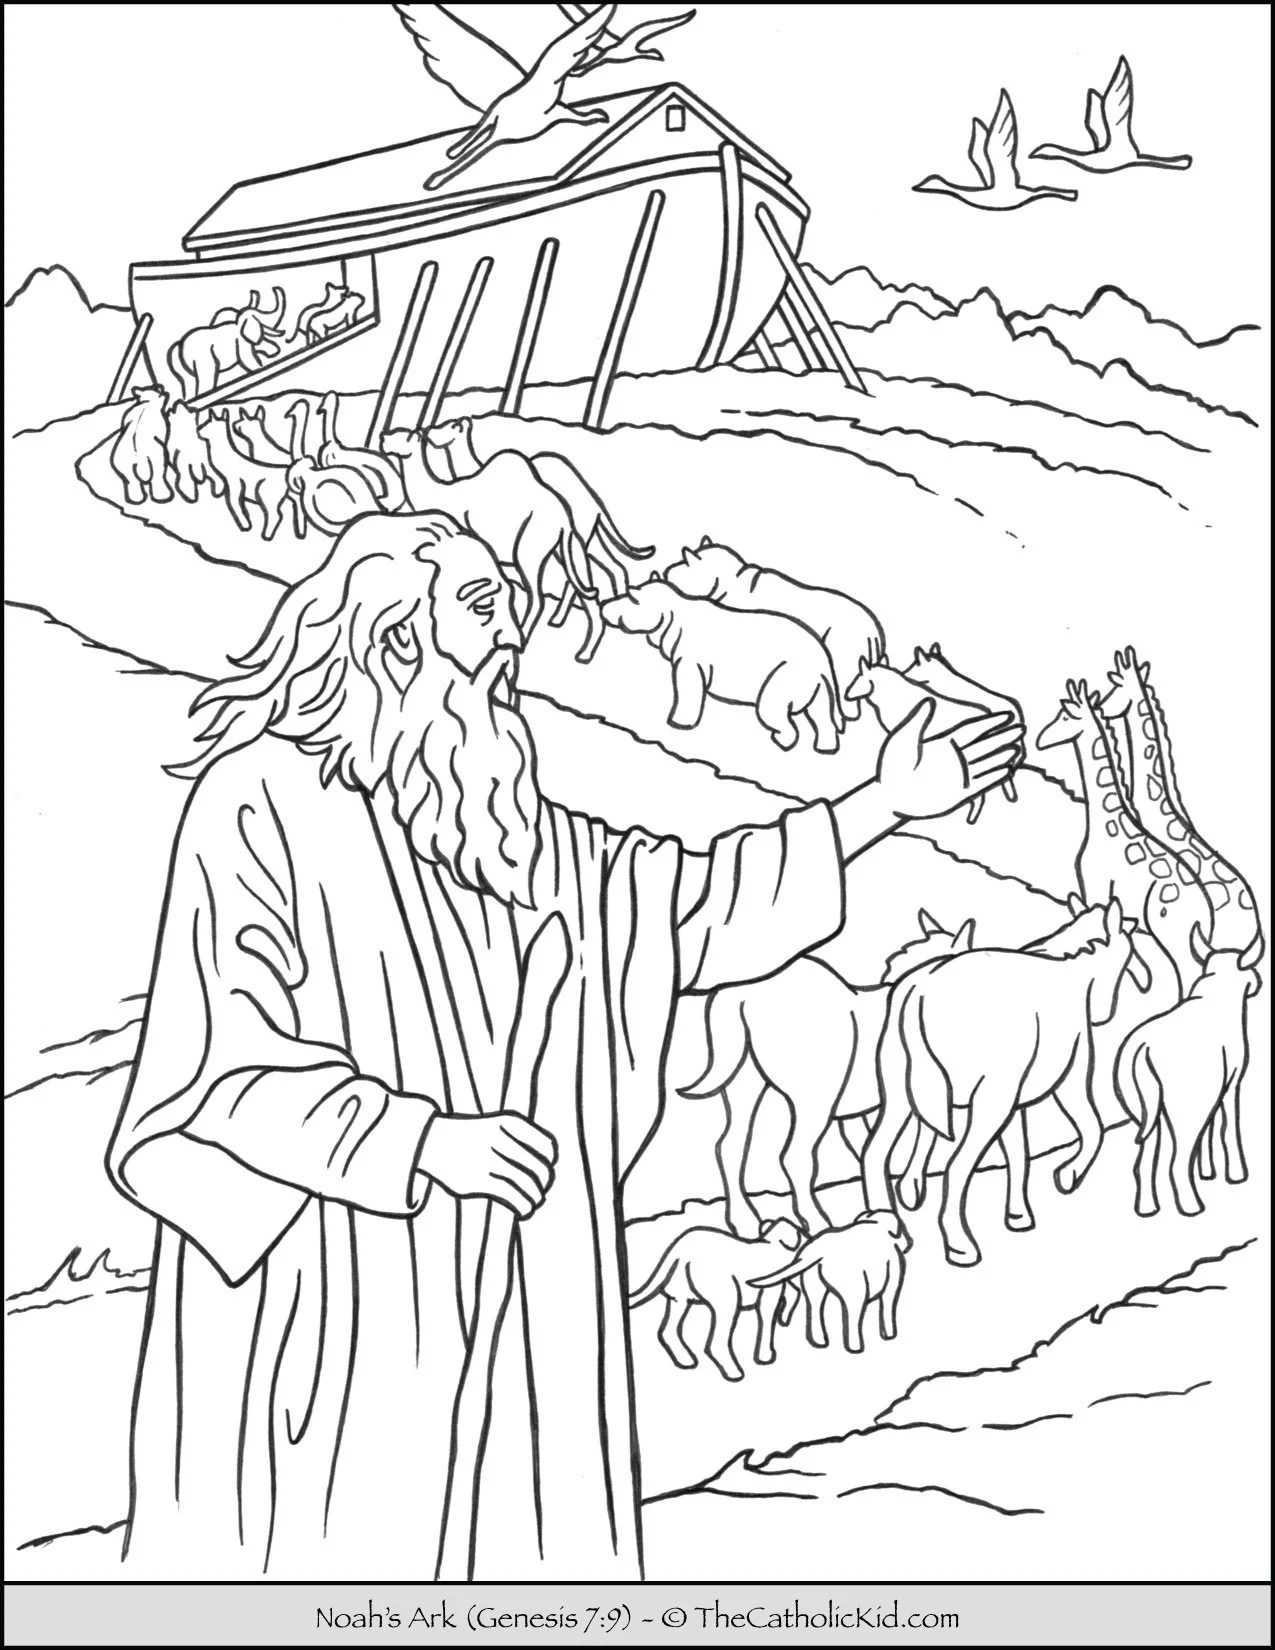 Noah's Ark Coloring Pages : noah's, coloring, pages, Noah's, Animals, Coloring, TheCatholicKid.com